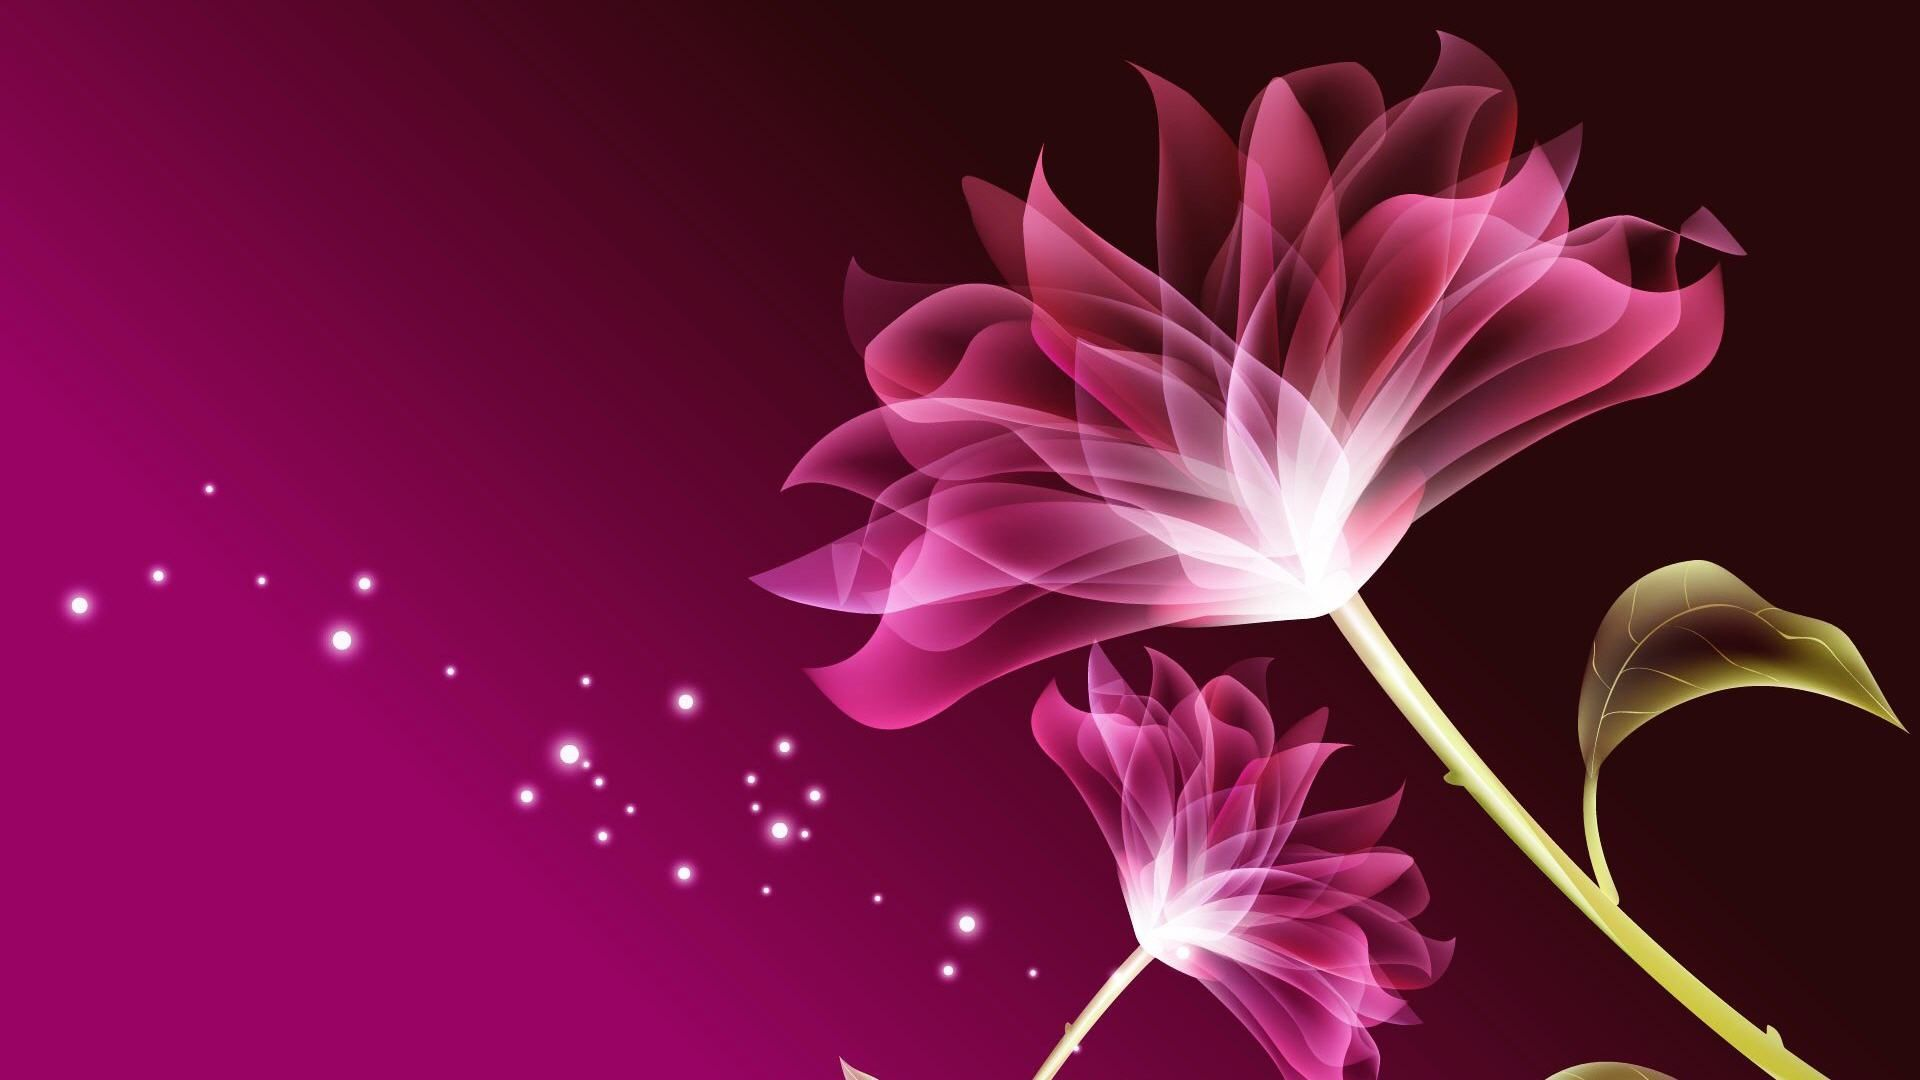 3d Pink Beautiful Flower Wallpaper Pretty Flowers Pinterest